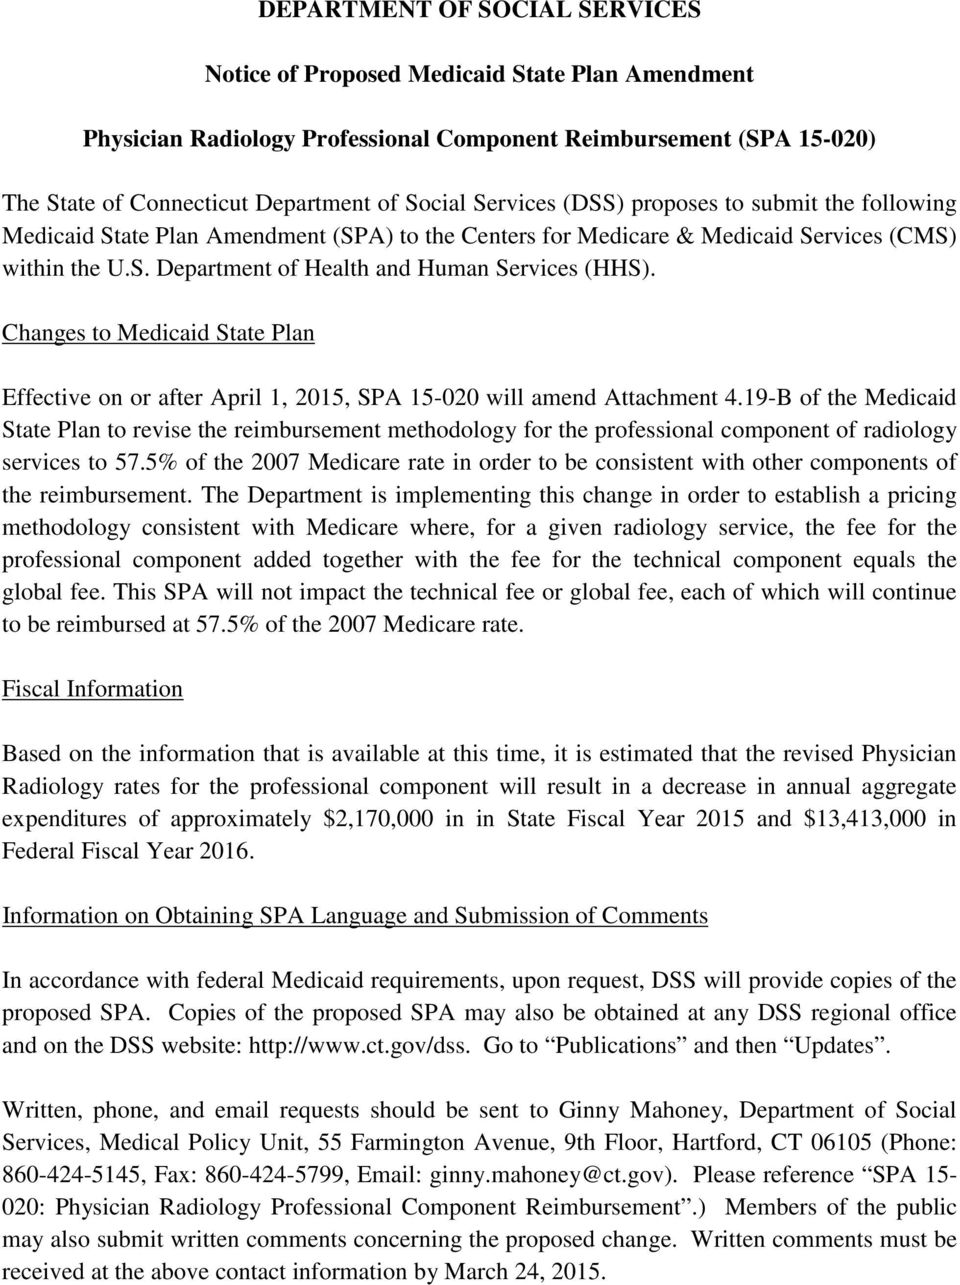 Changes to Medicaid State Plan Effective on or after April 1, 2015, SPA 15-020 will amend Attachment 4.